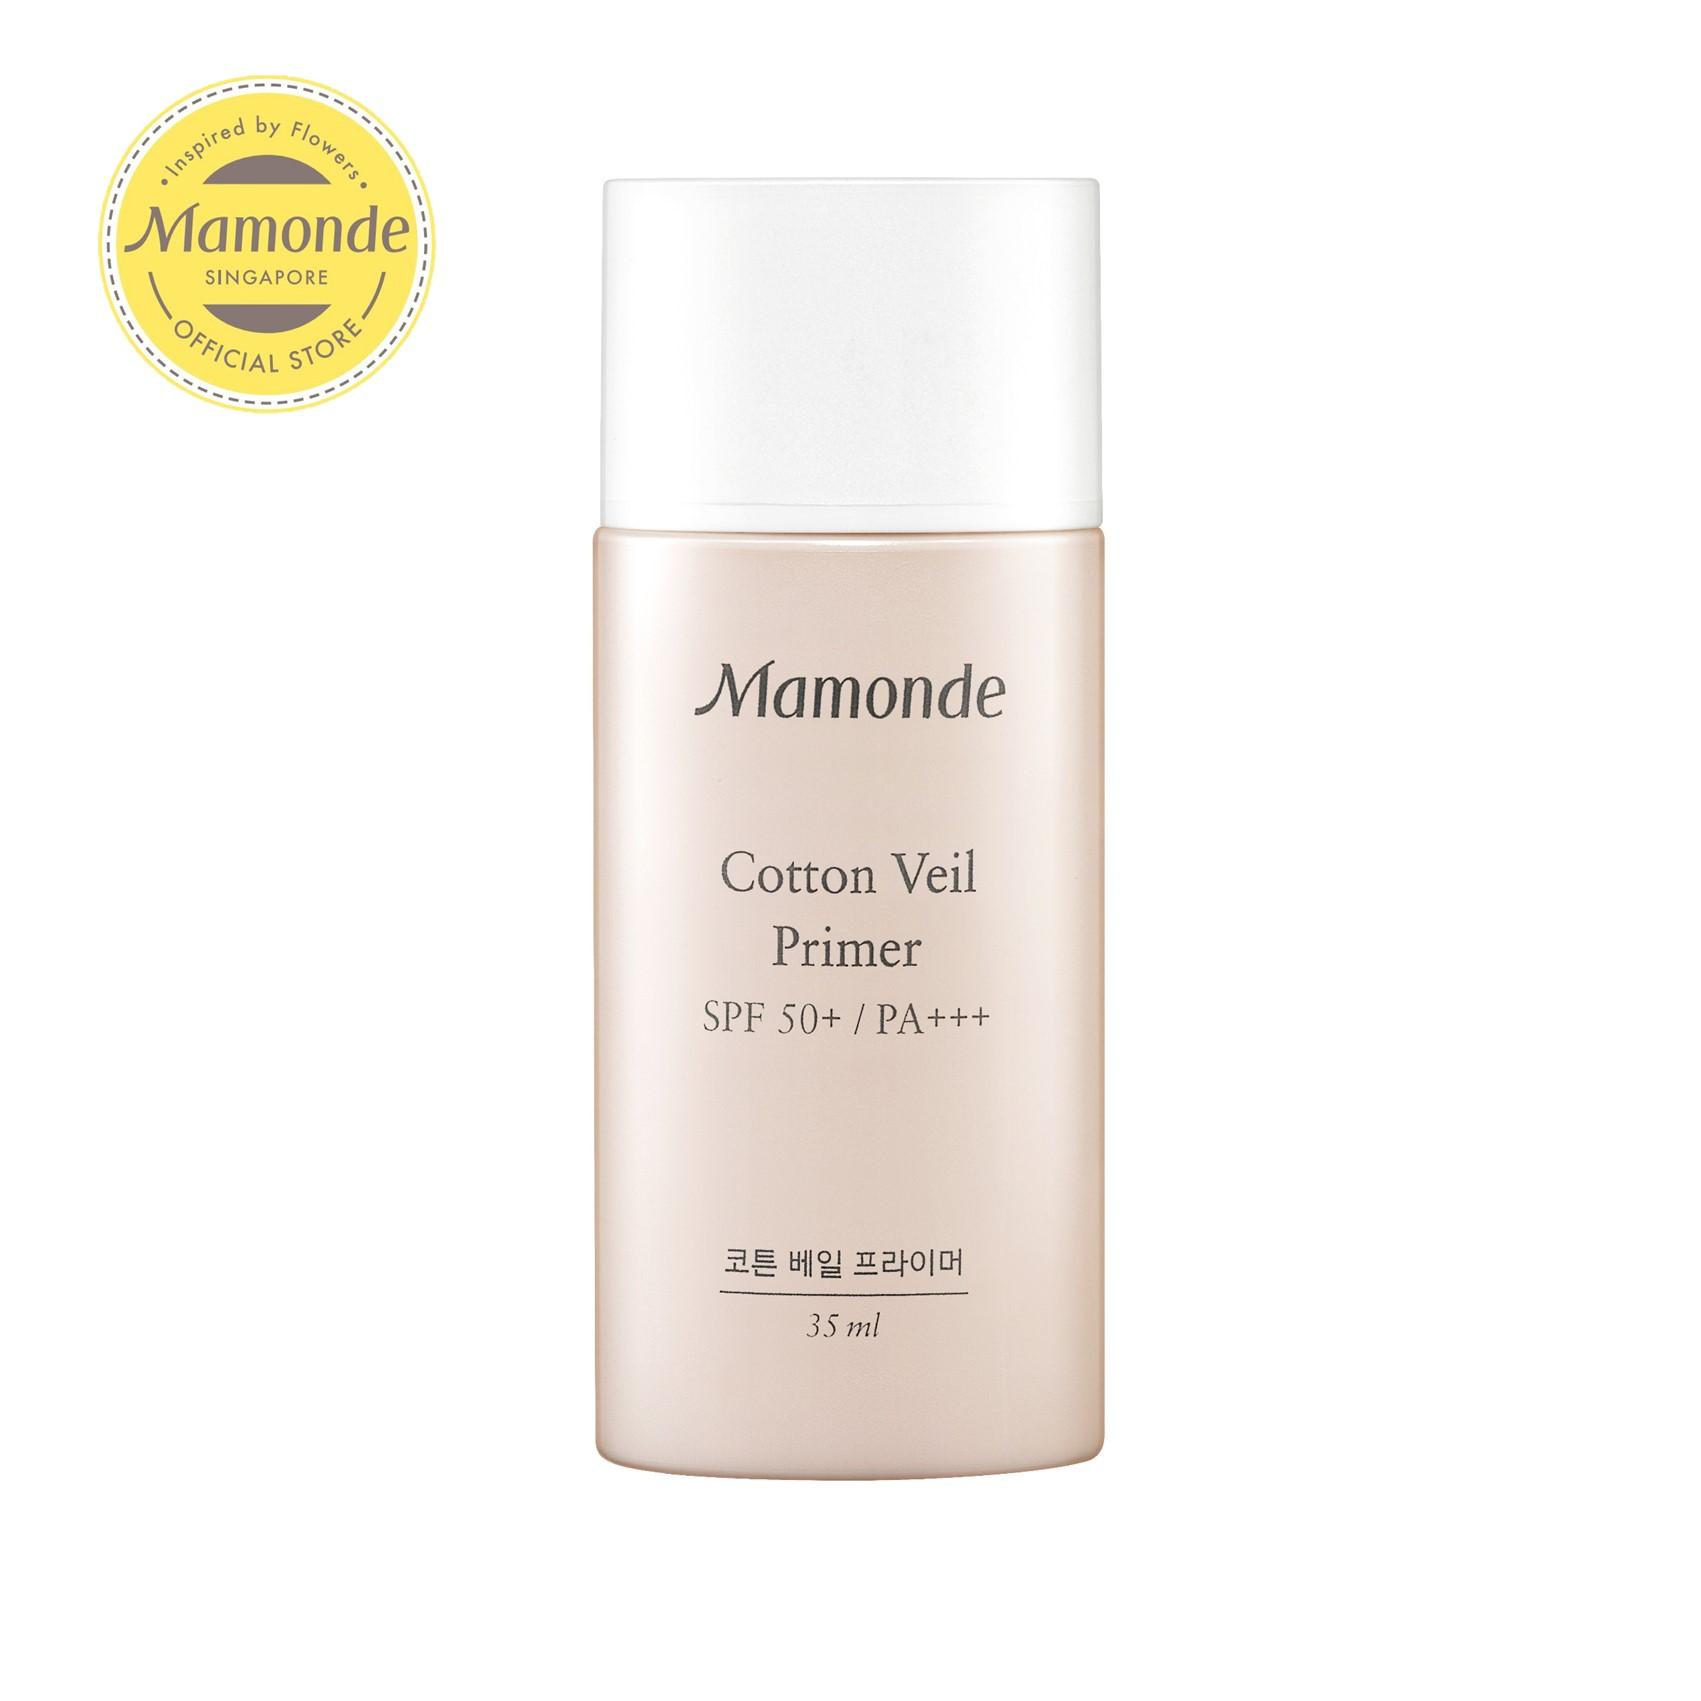 [flash Sales] Mamonde Cotton Veil Primer [3 Shades Available, Choose From Options] 35ml By Mamonde (capitaland Merchant).